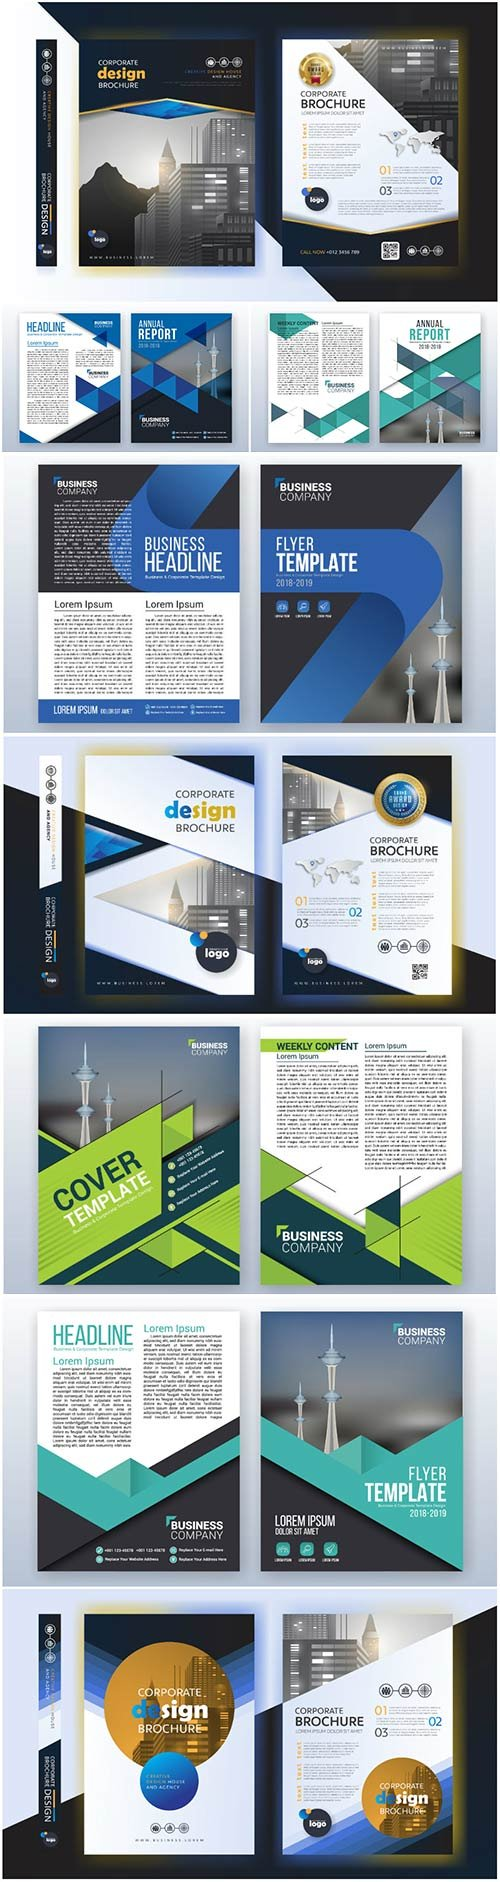 Brochure template vector layout design, corporate business annual report, magazine, flyer mockup # 213